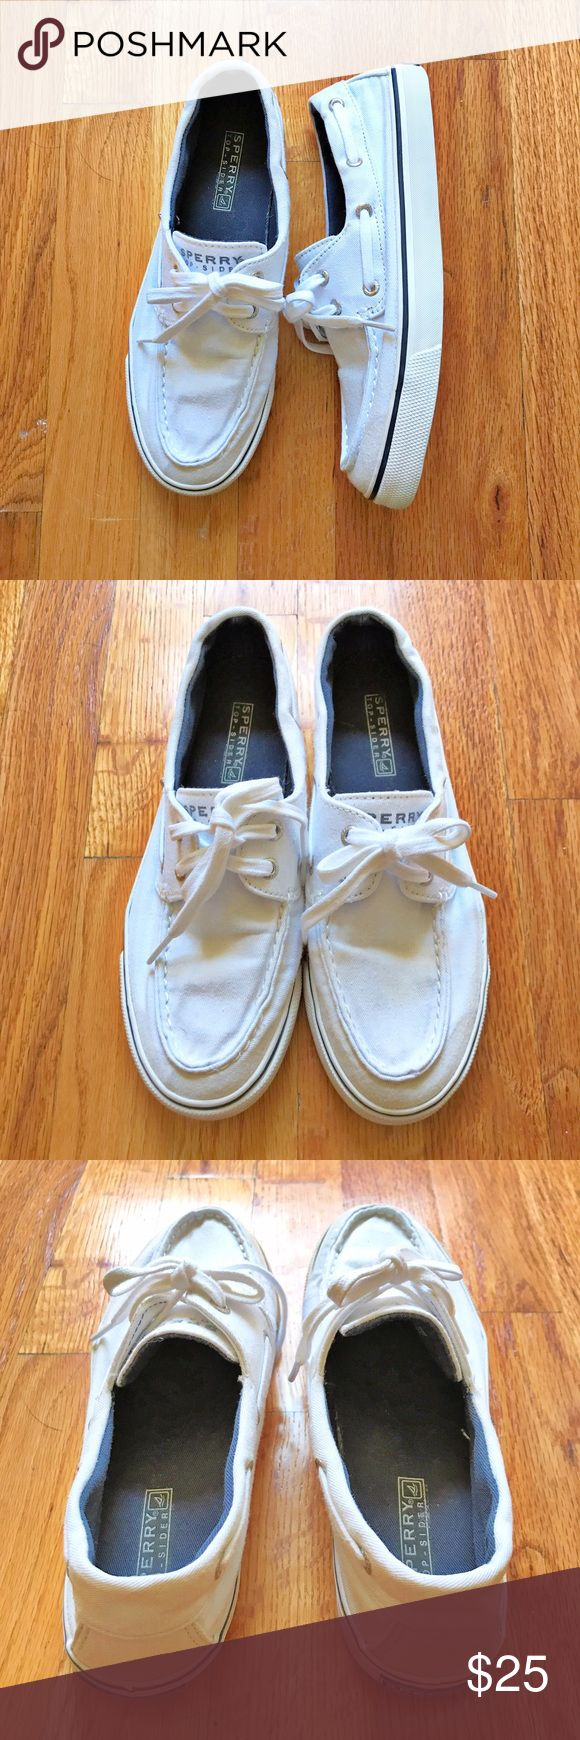 Sperry Top-Sider White shoes Excellent condition white Sperry Top-Sider shoes. Sperry Top-Sider Shoes Flats & Loafers